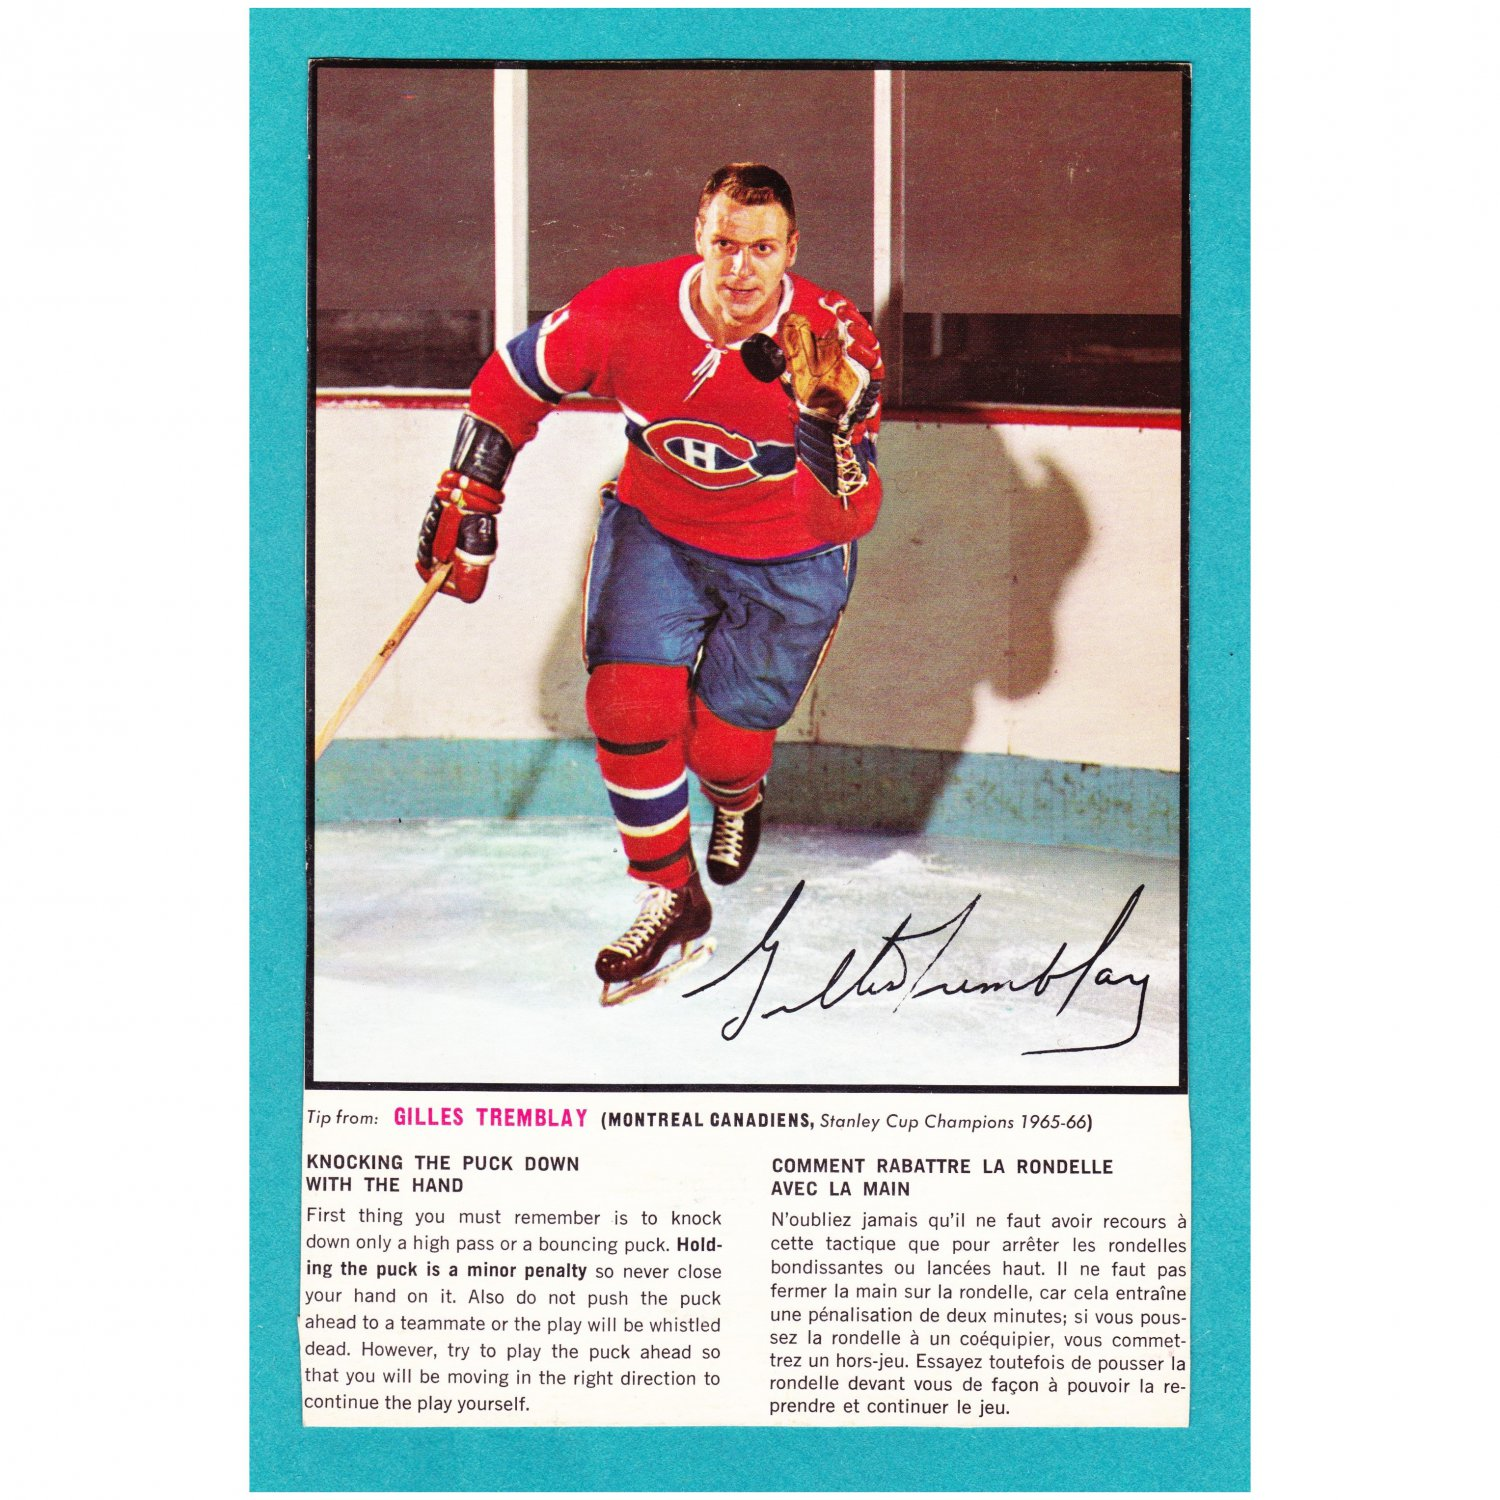 1966-67 General Mills Gilles Tremblay Action Photo